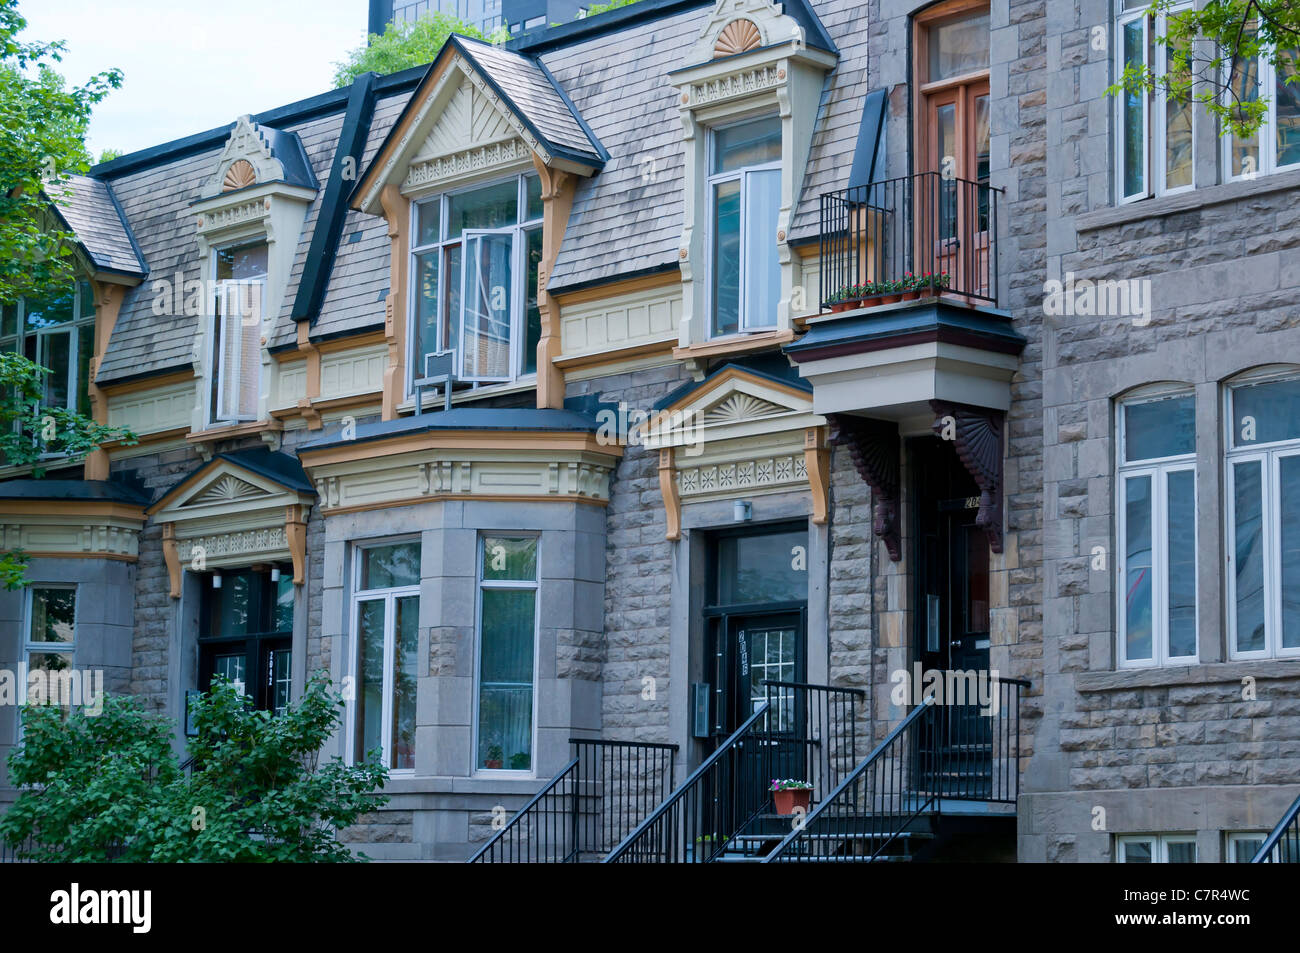 Typical houses Montreal Canada Stock Photo: 39232072 - Alamy on churches in canada, houses from canada, typical houses puerto rico, tree house in canada, moving house in canada, museums in canada, mansions in canada, toronto canada, typical houses scotland, bridges in canada, lodges in canada, homes in canada, hotels in canada, typical house in india, typical house in china, largest lake in canada, old house in canada, convents in canada, biggest house in canada, castles in canada,